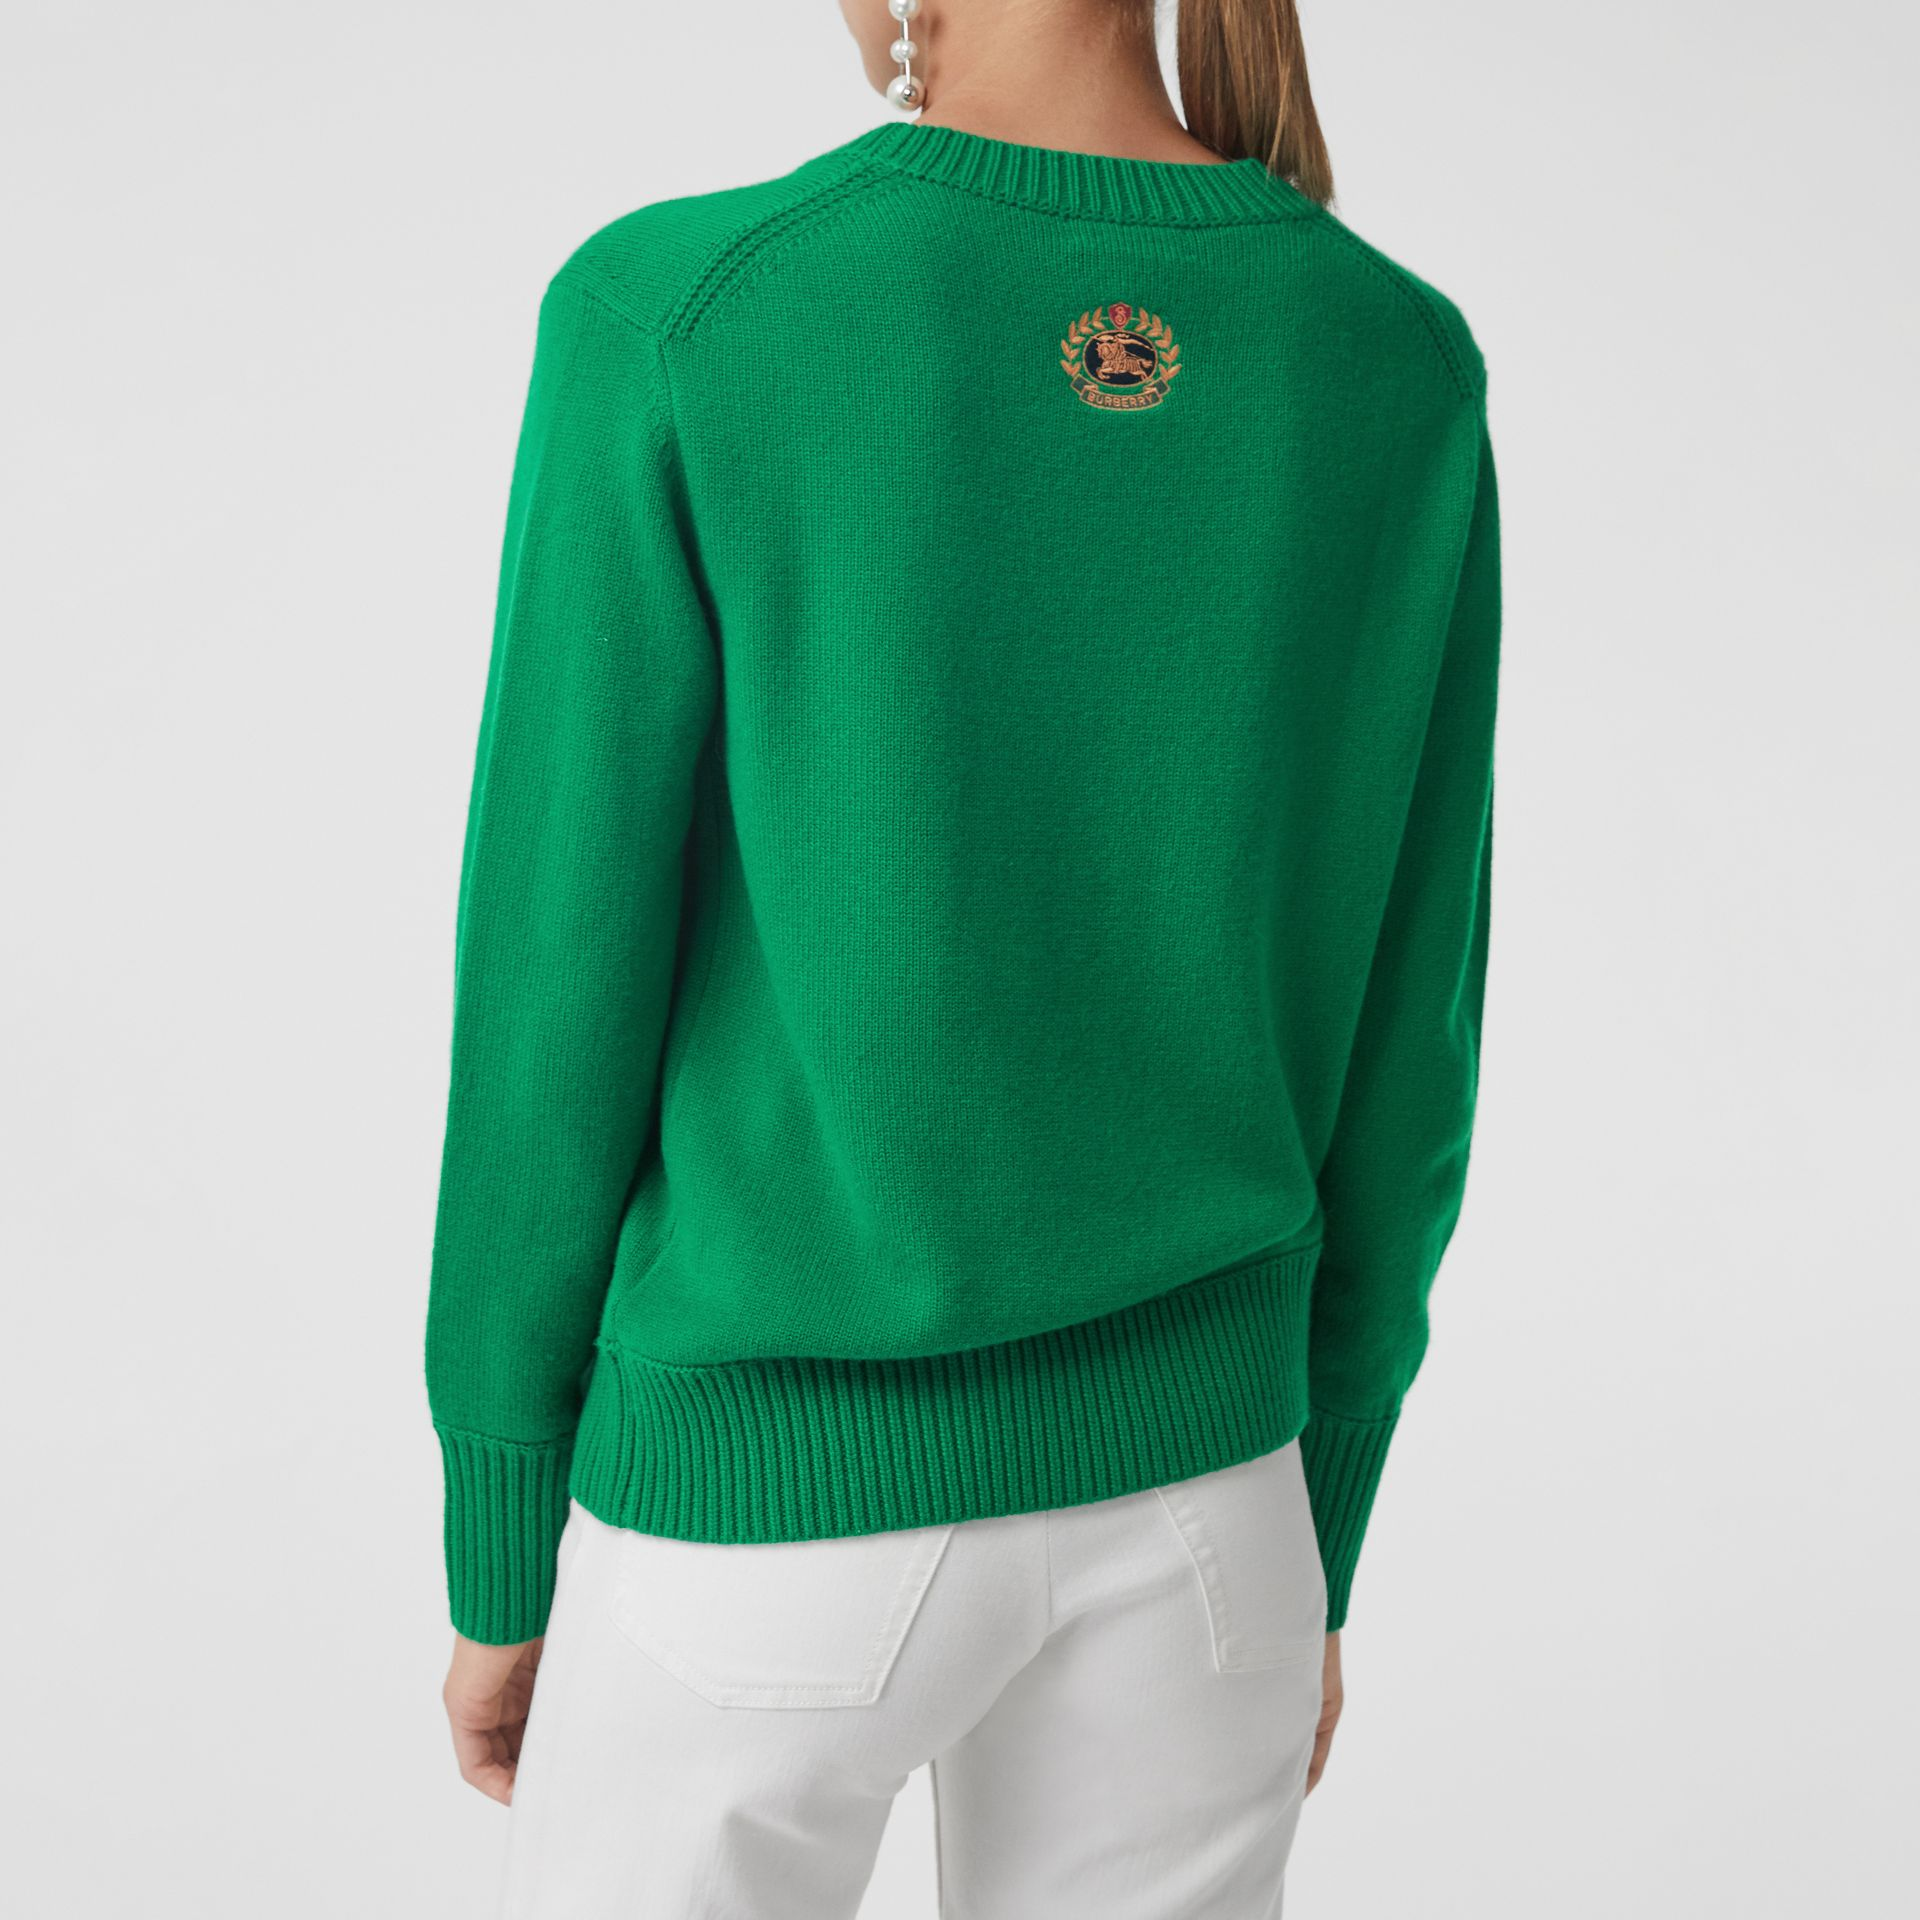 Archive Logo Appliqué Cashmere Sweater in Vibrant Green - Women | Burberry - gallery image 2